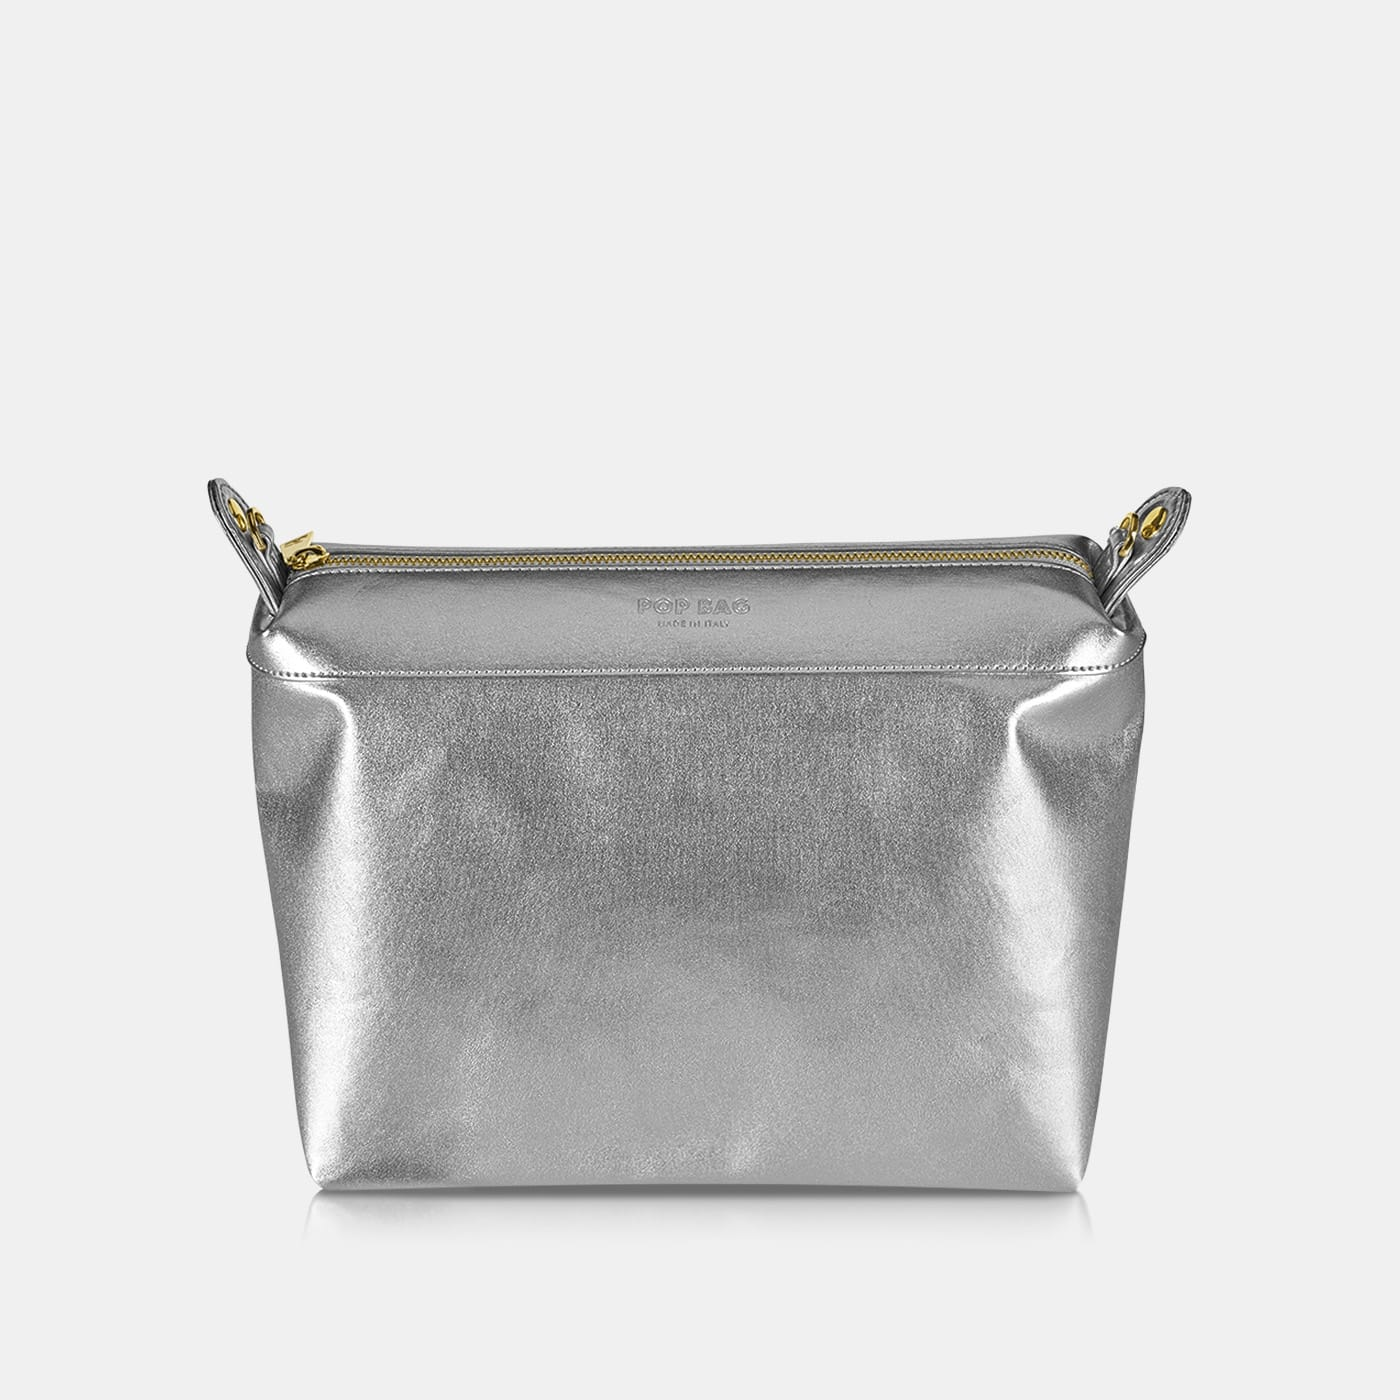 Bag In Bag - Metallic - Steel Metal - Large